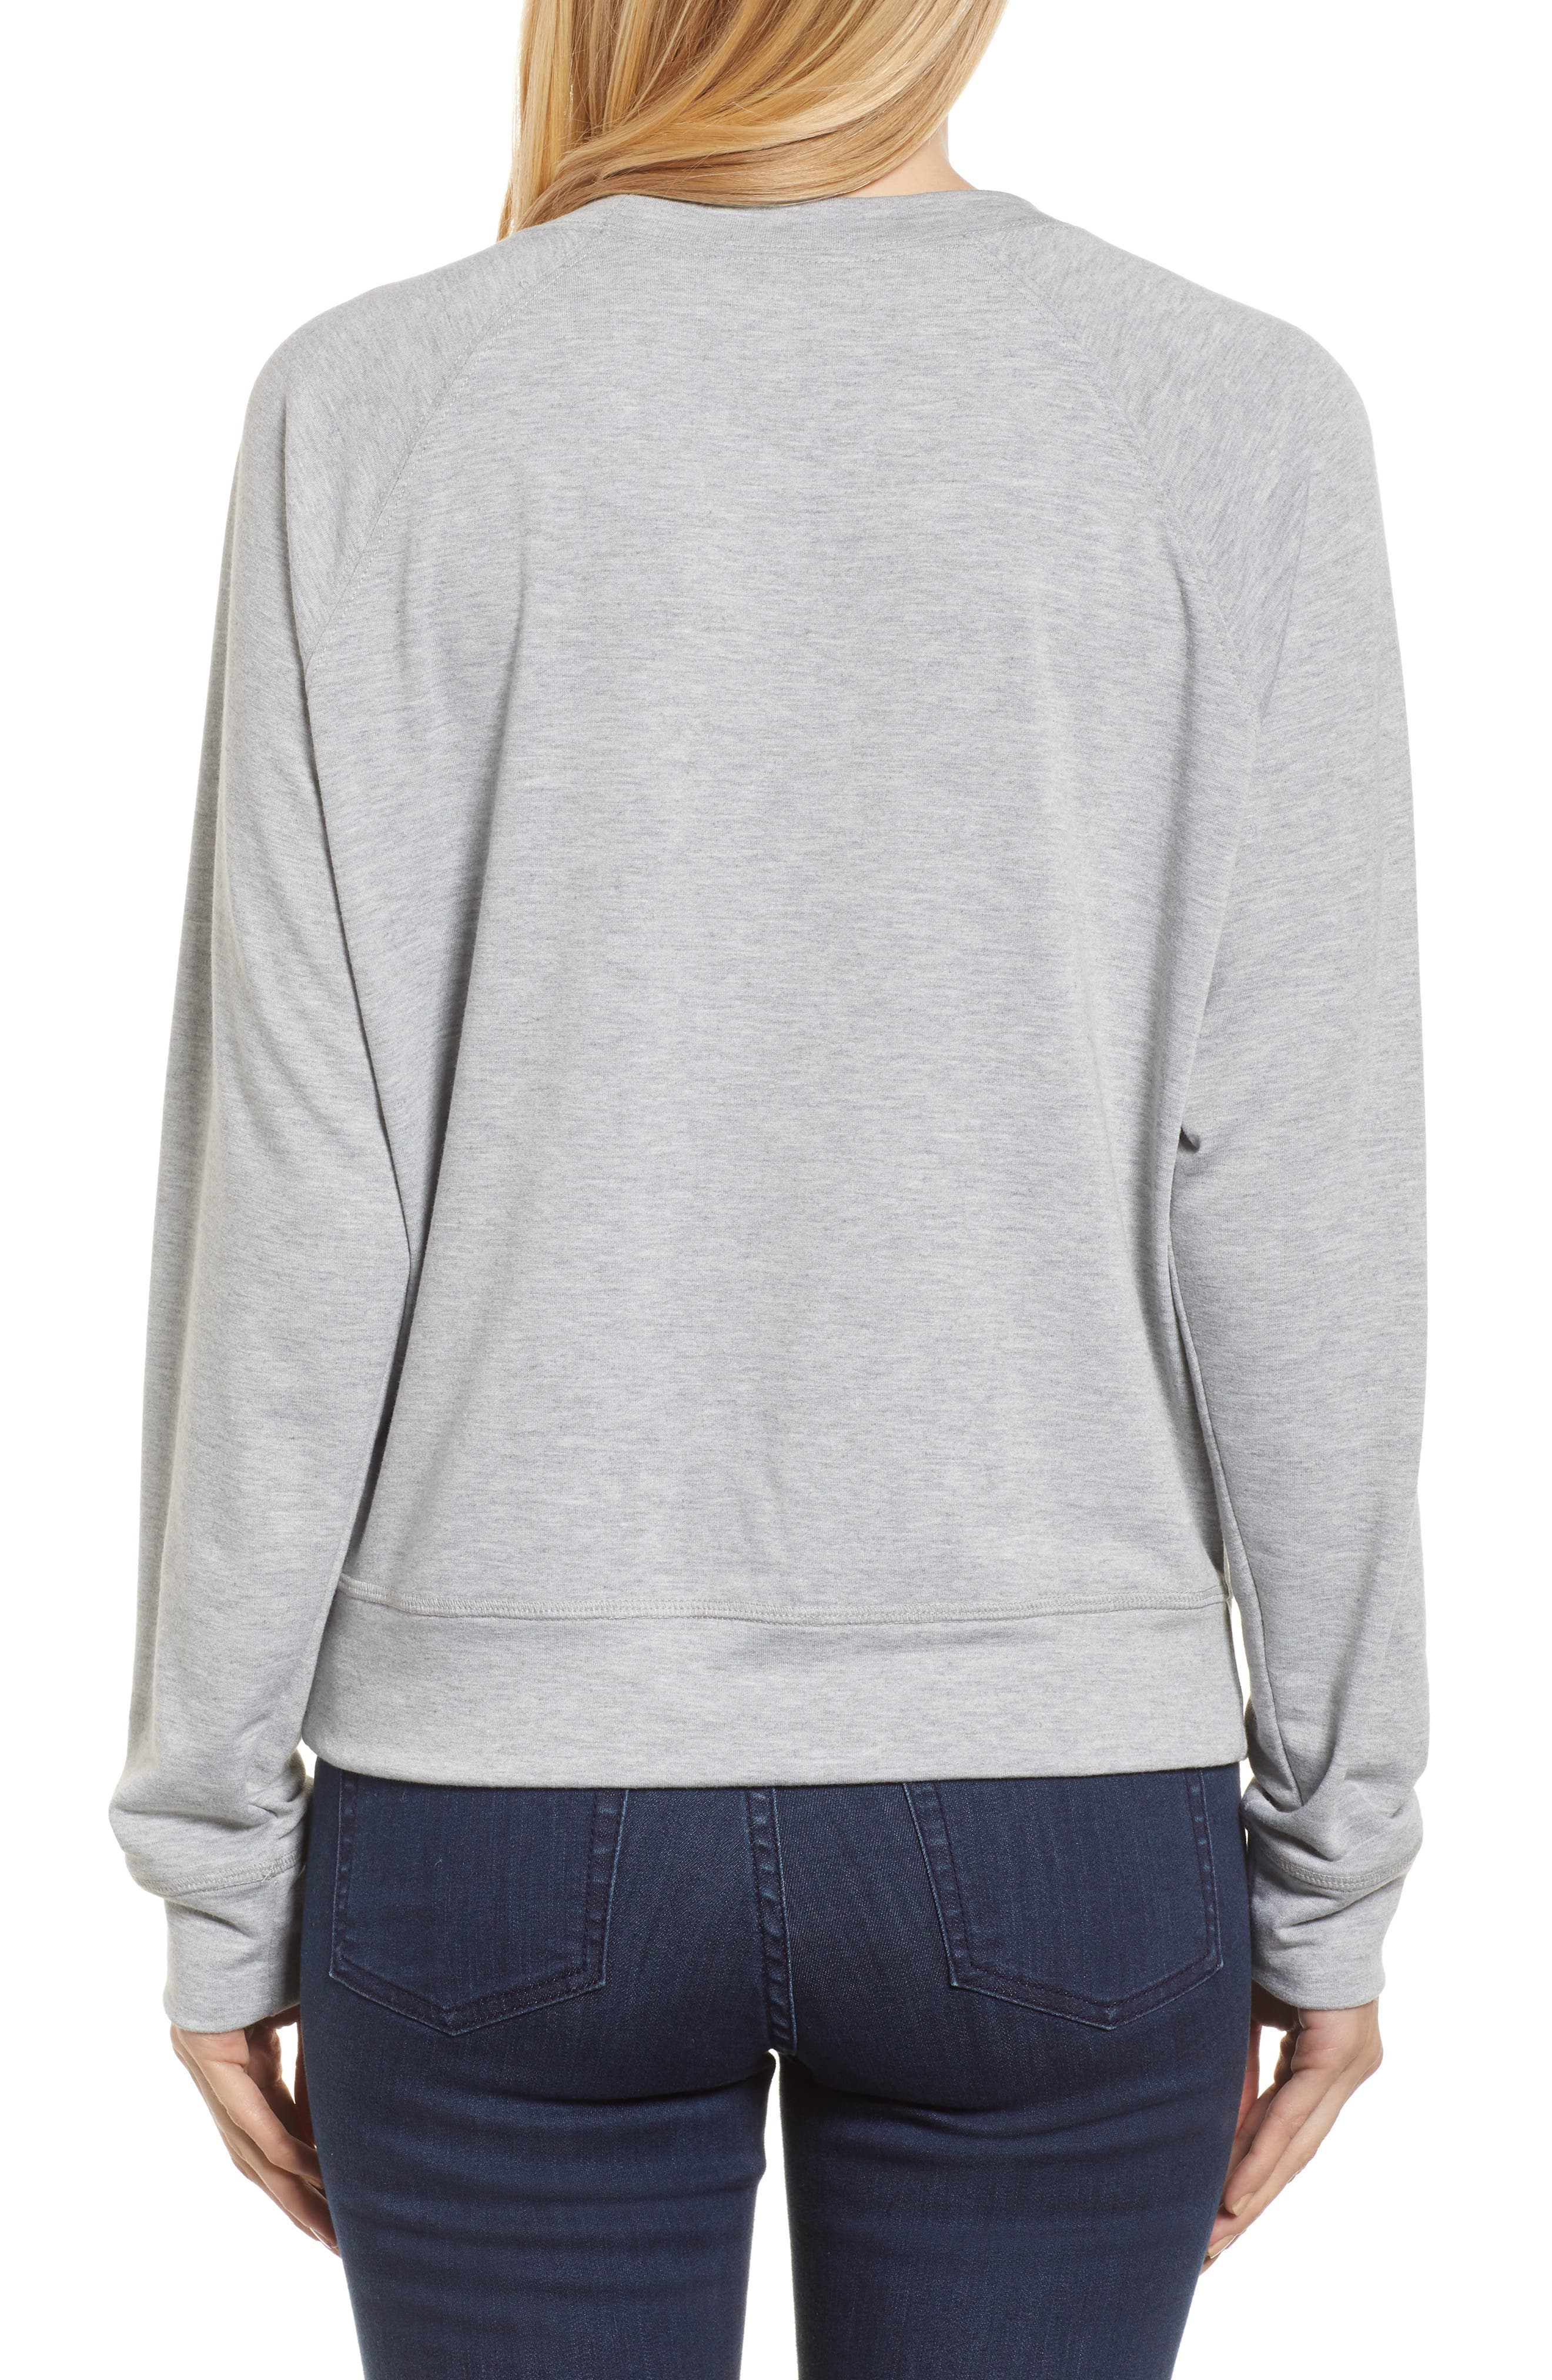 Off-Duty Tired as a Mother Sweatshirt,                             Alternate thumbnail 2, color,                             Grey Heather